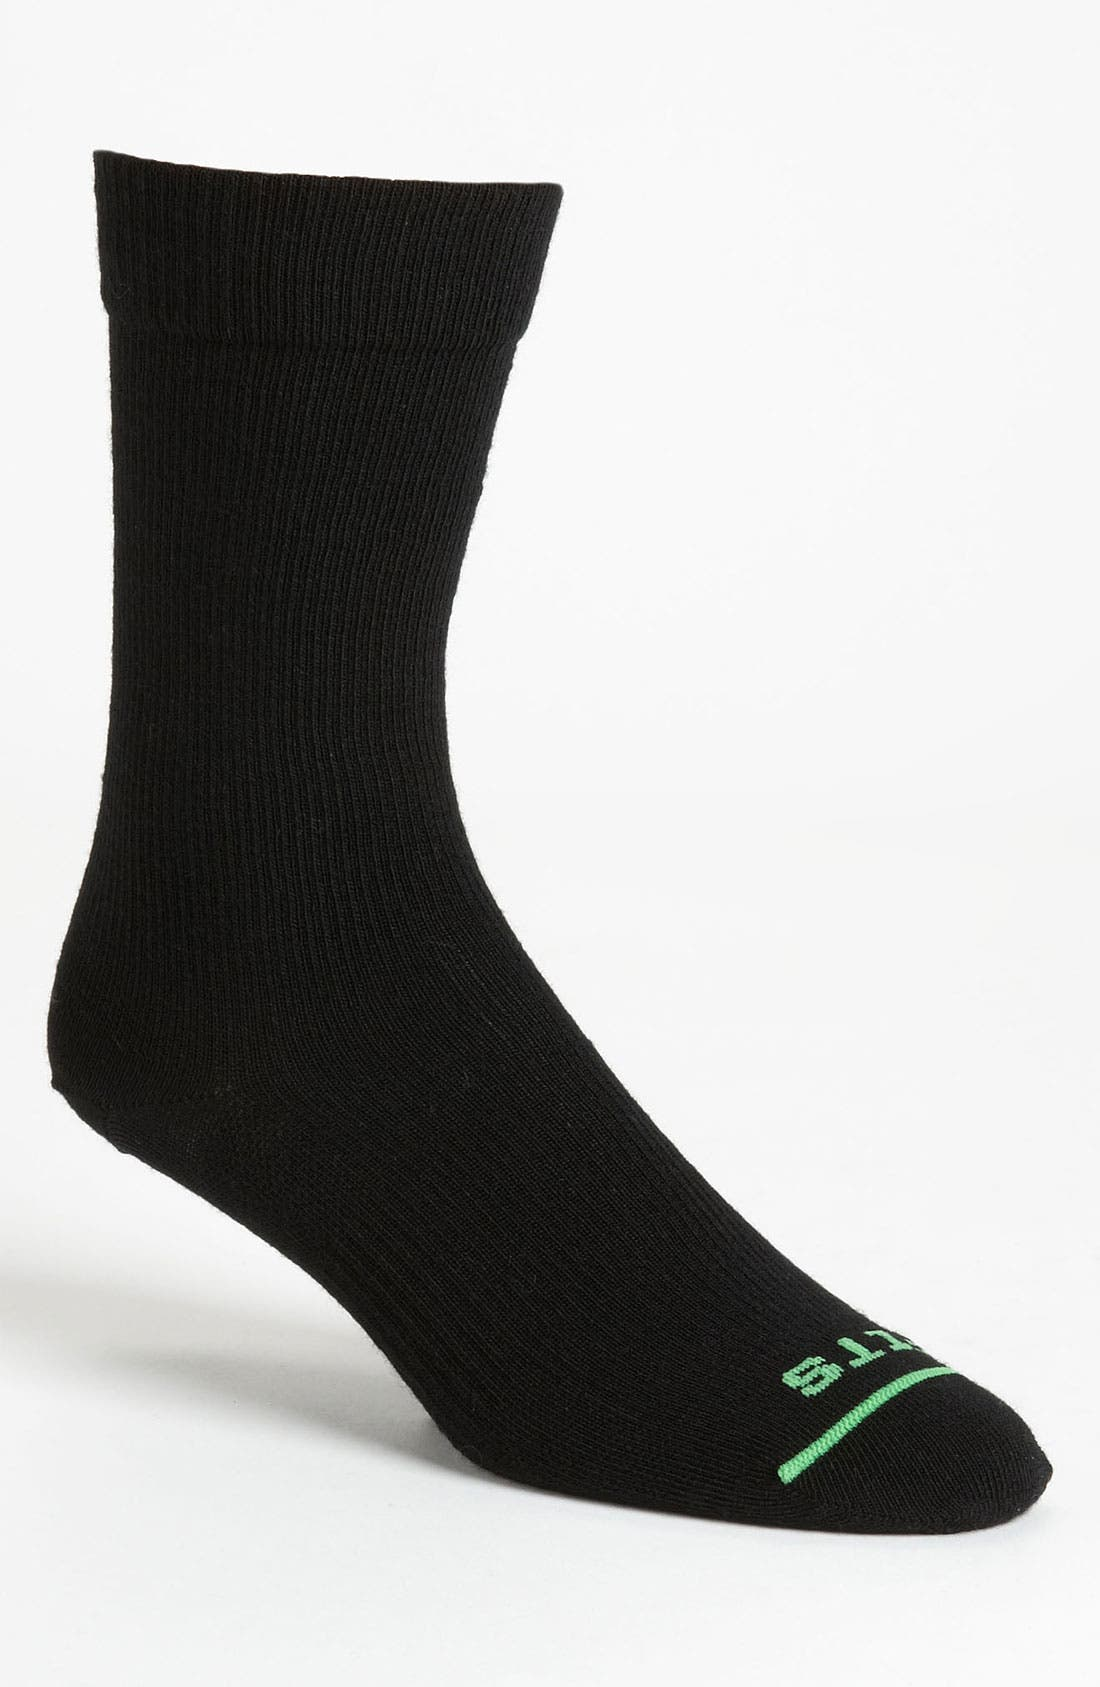 Main Image - FITS Sock Co. 'Liner' Crew Socks (Online Only)